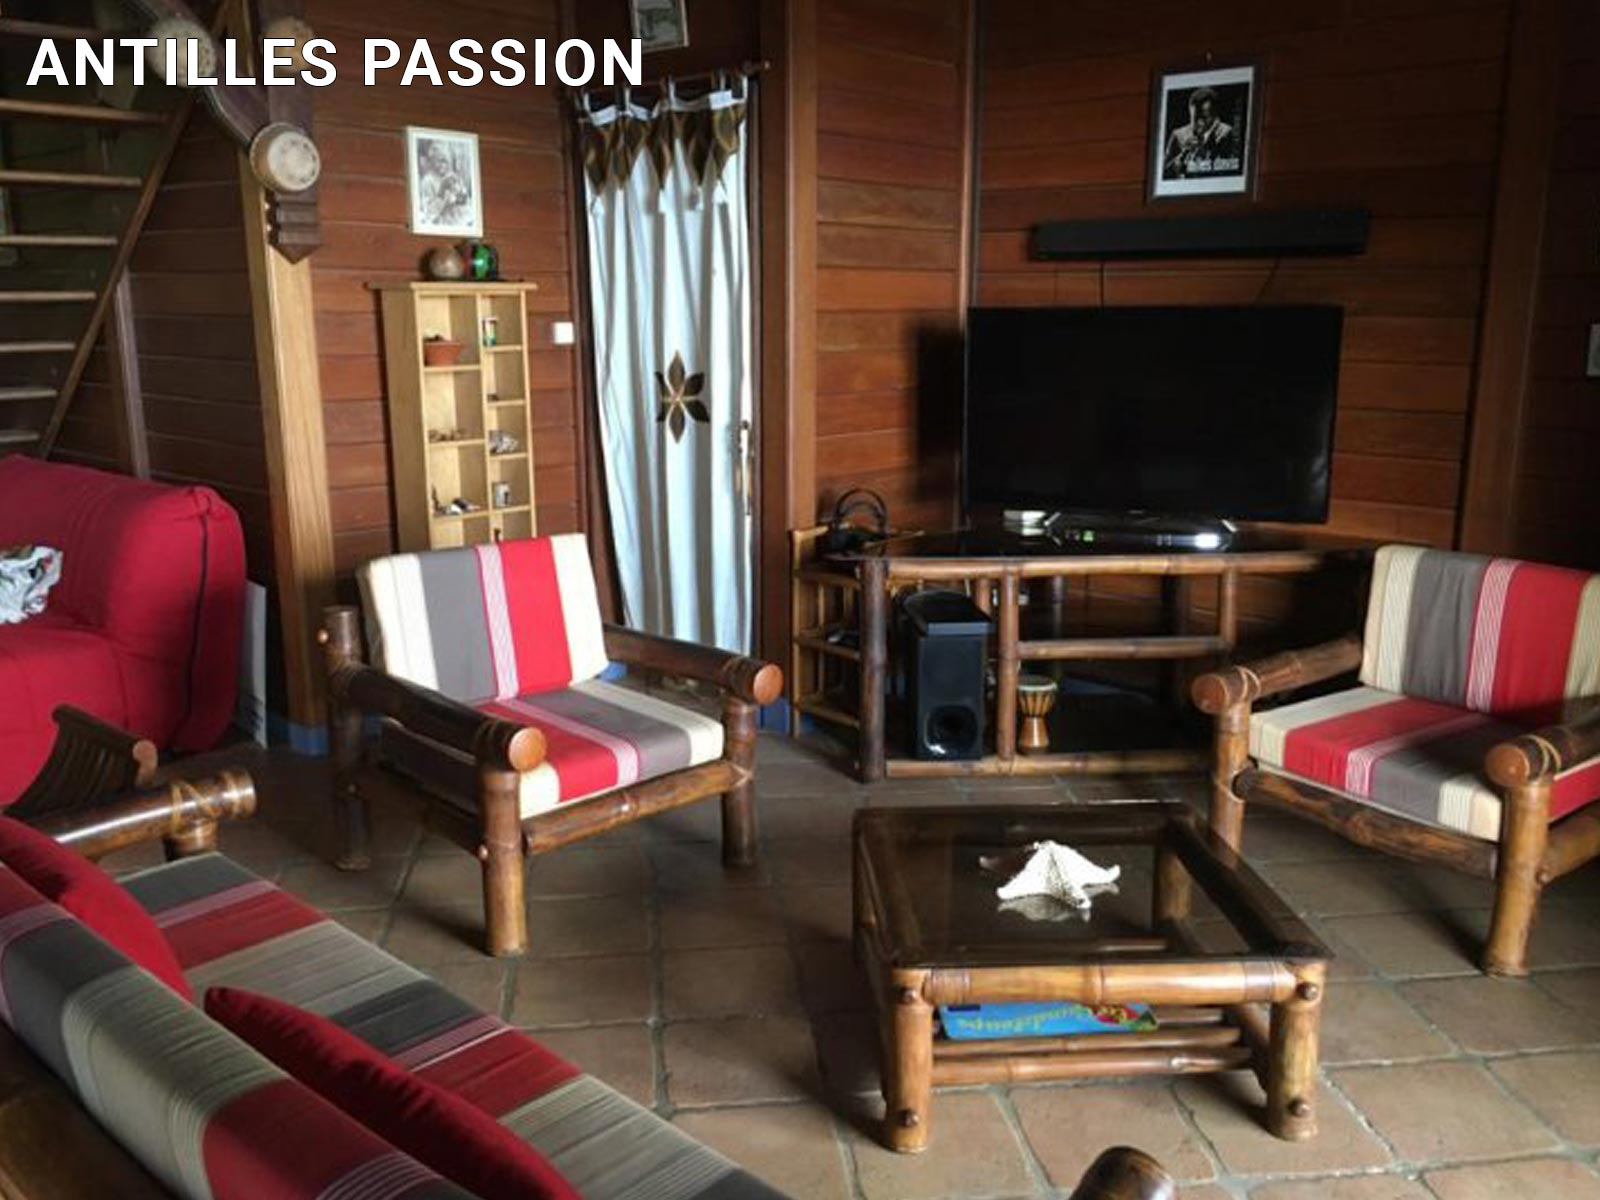 Antilles Passion - Salon créole